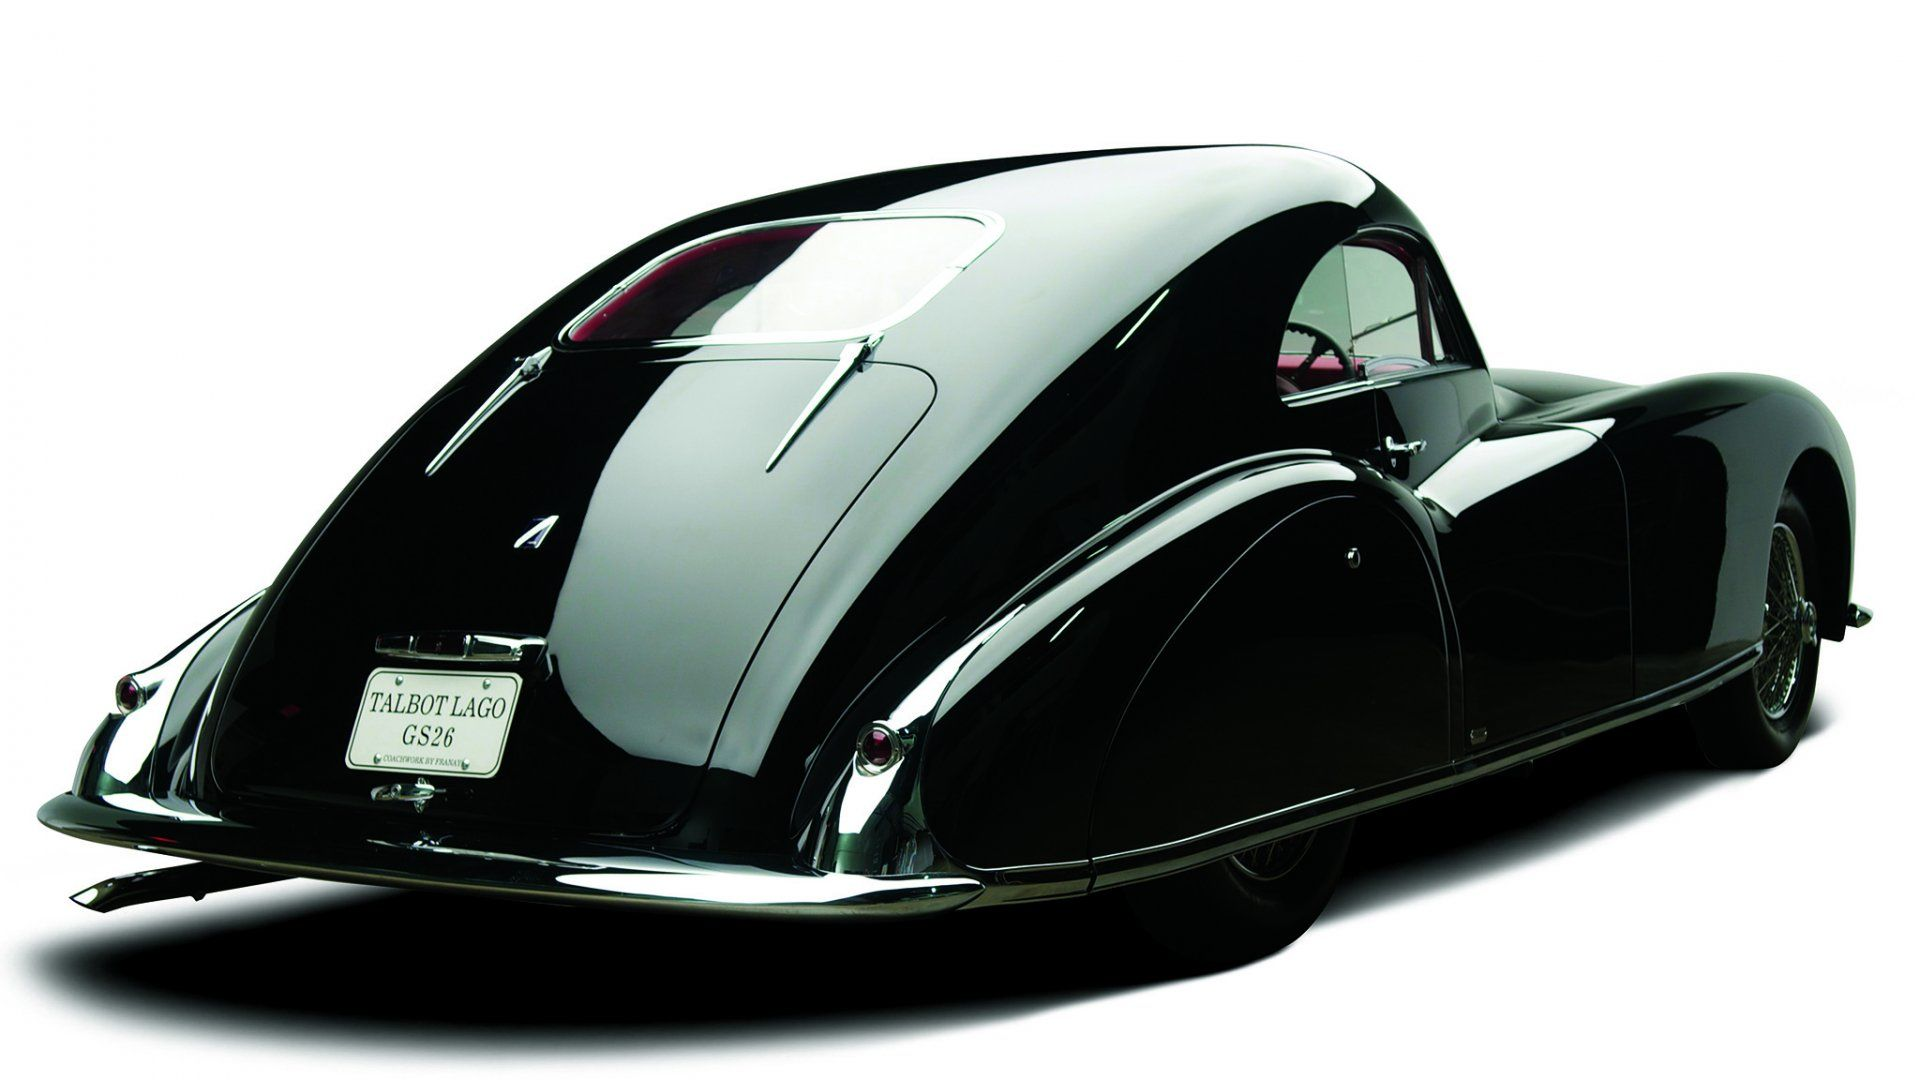 1947, Talbot Lago T26 Grand Sport, Coupe Franay.